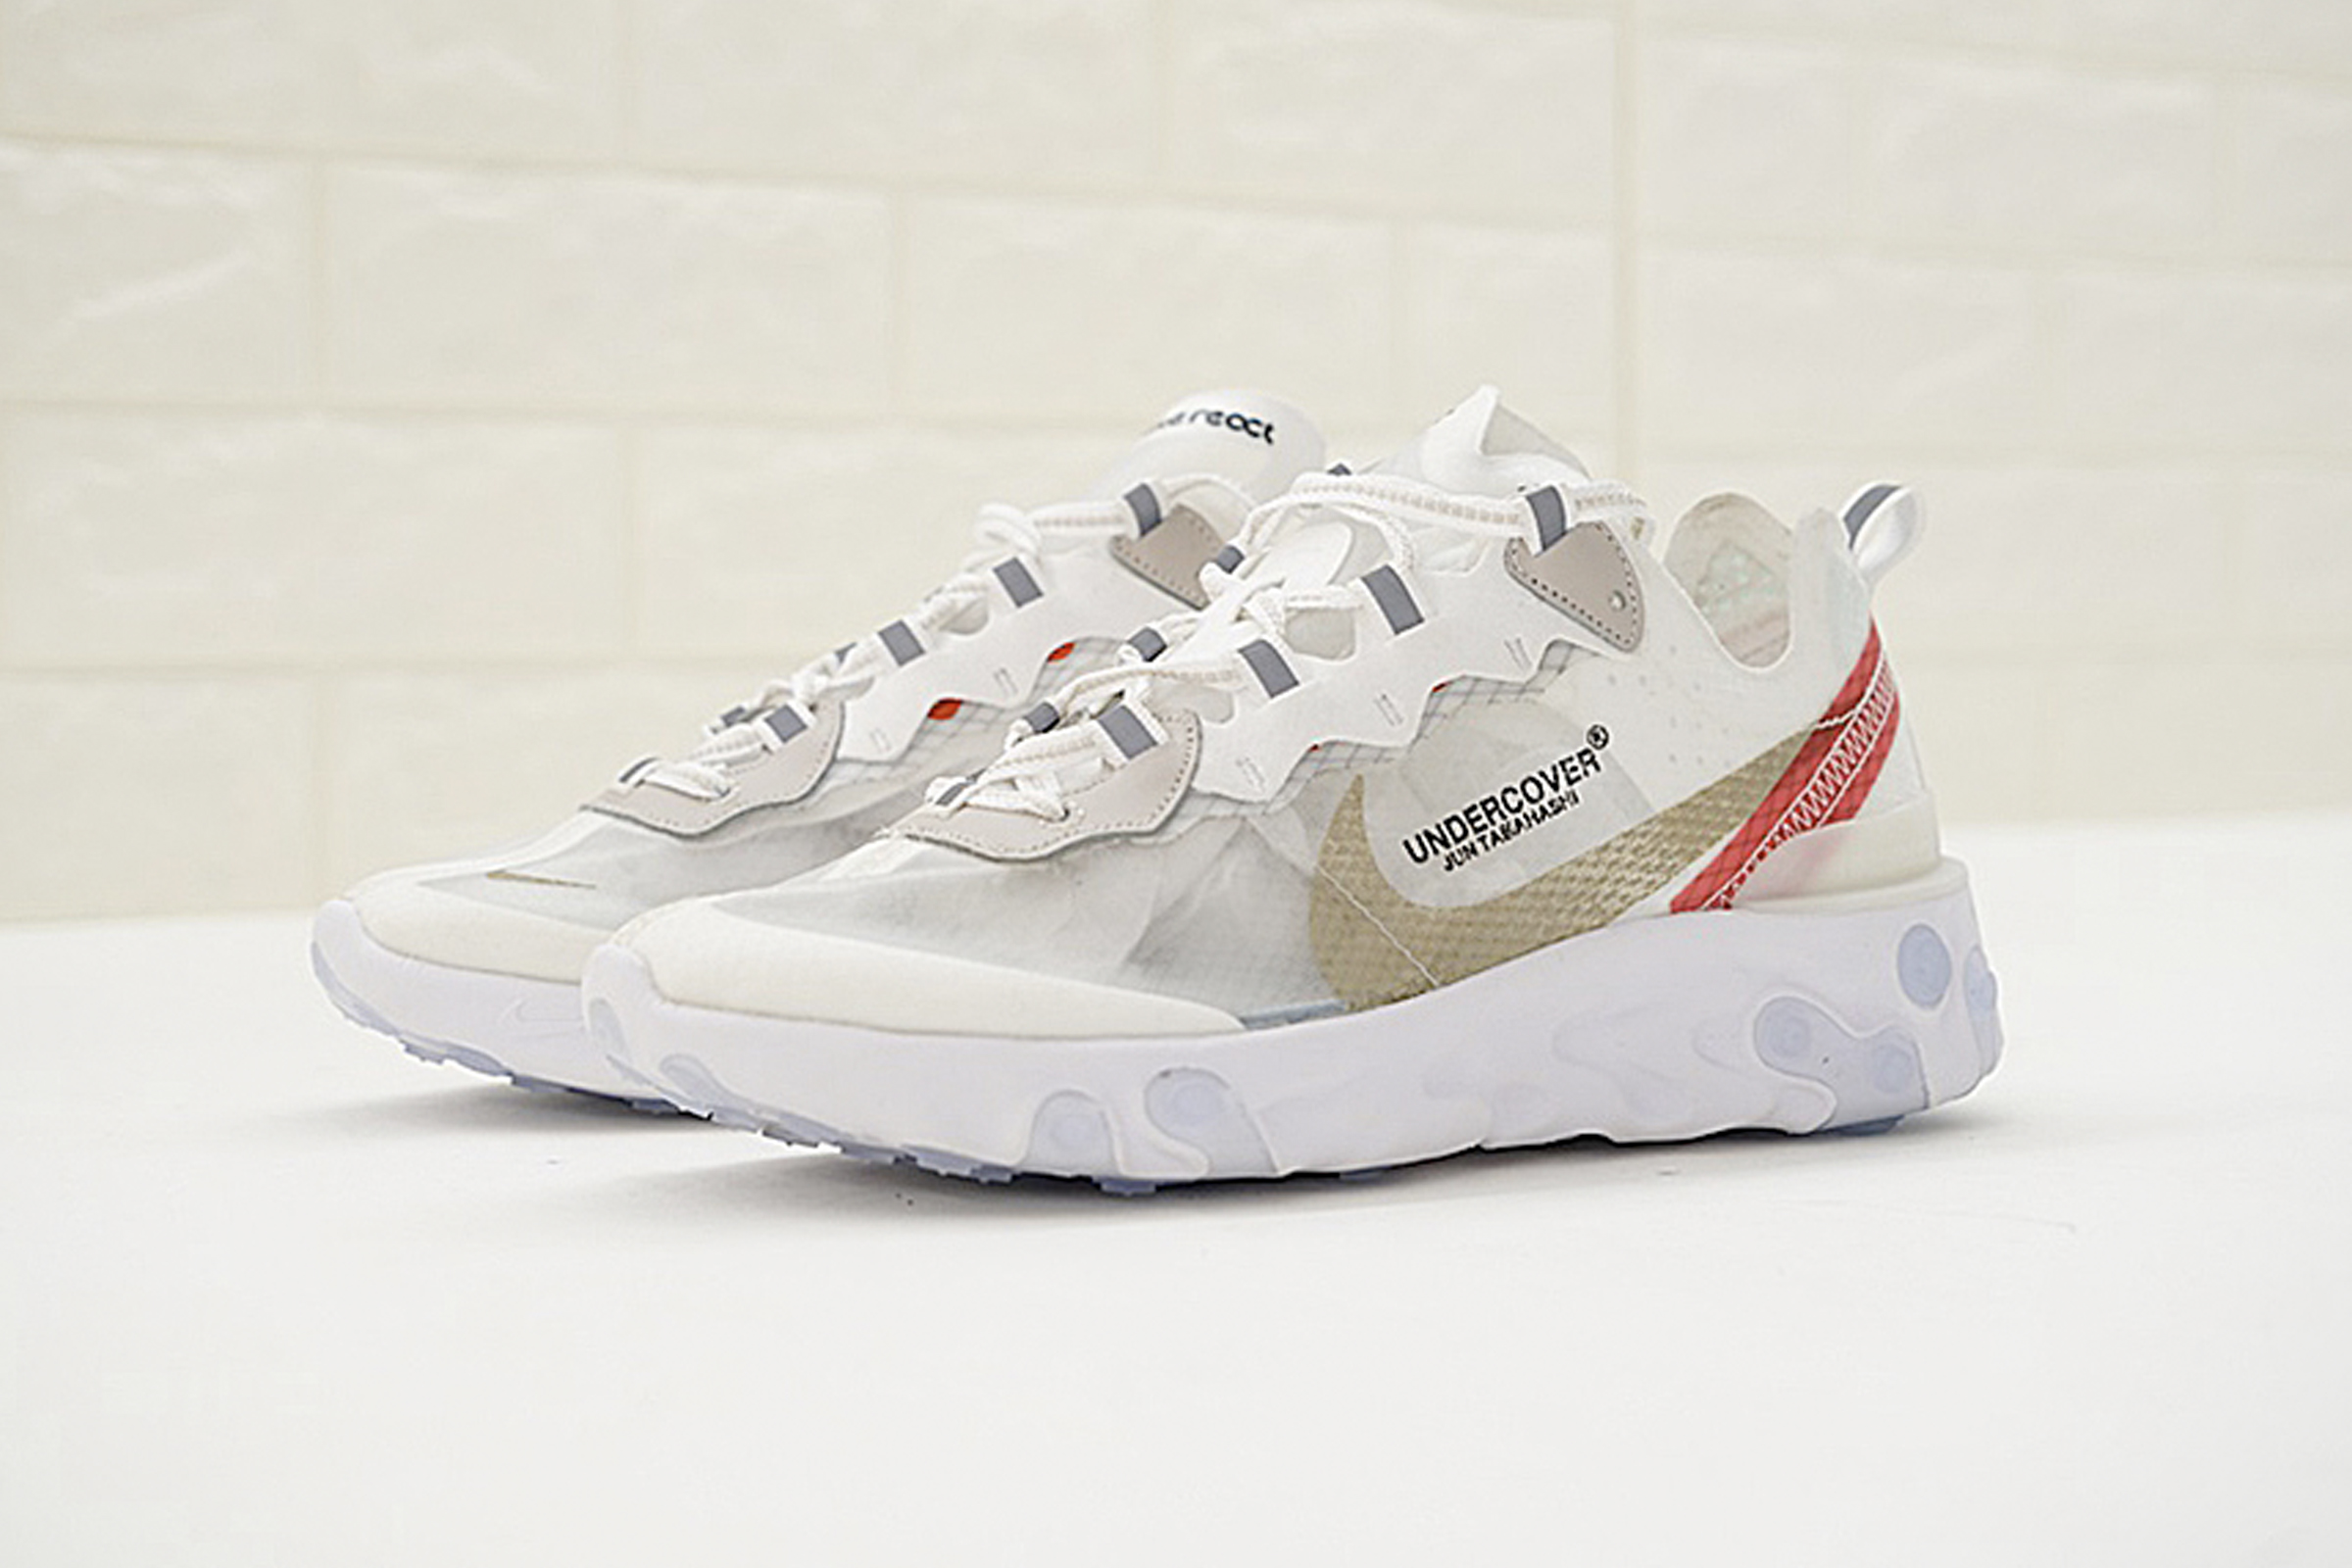 b5762dc3b9853 Undercover and Nike Tease New Colorways for the React Element 87 ...